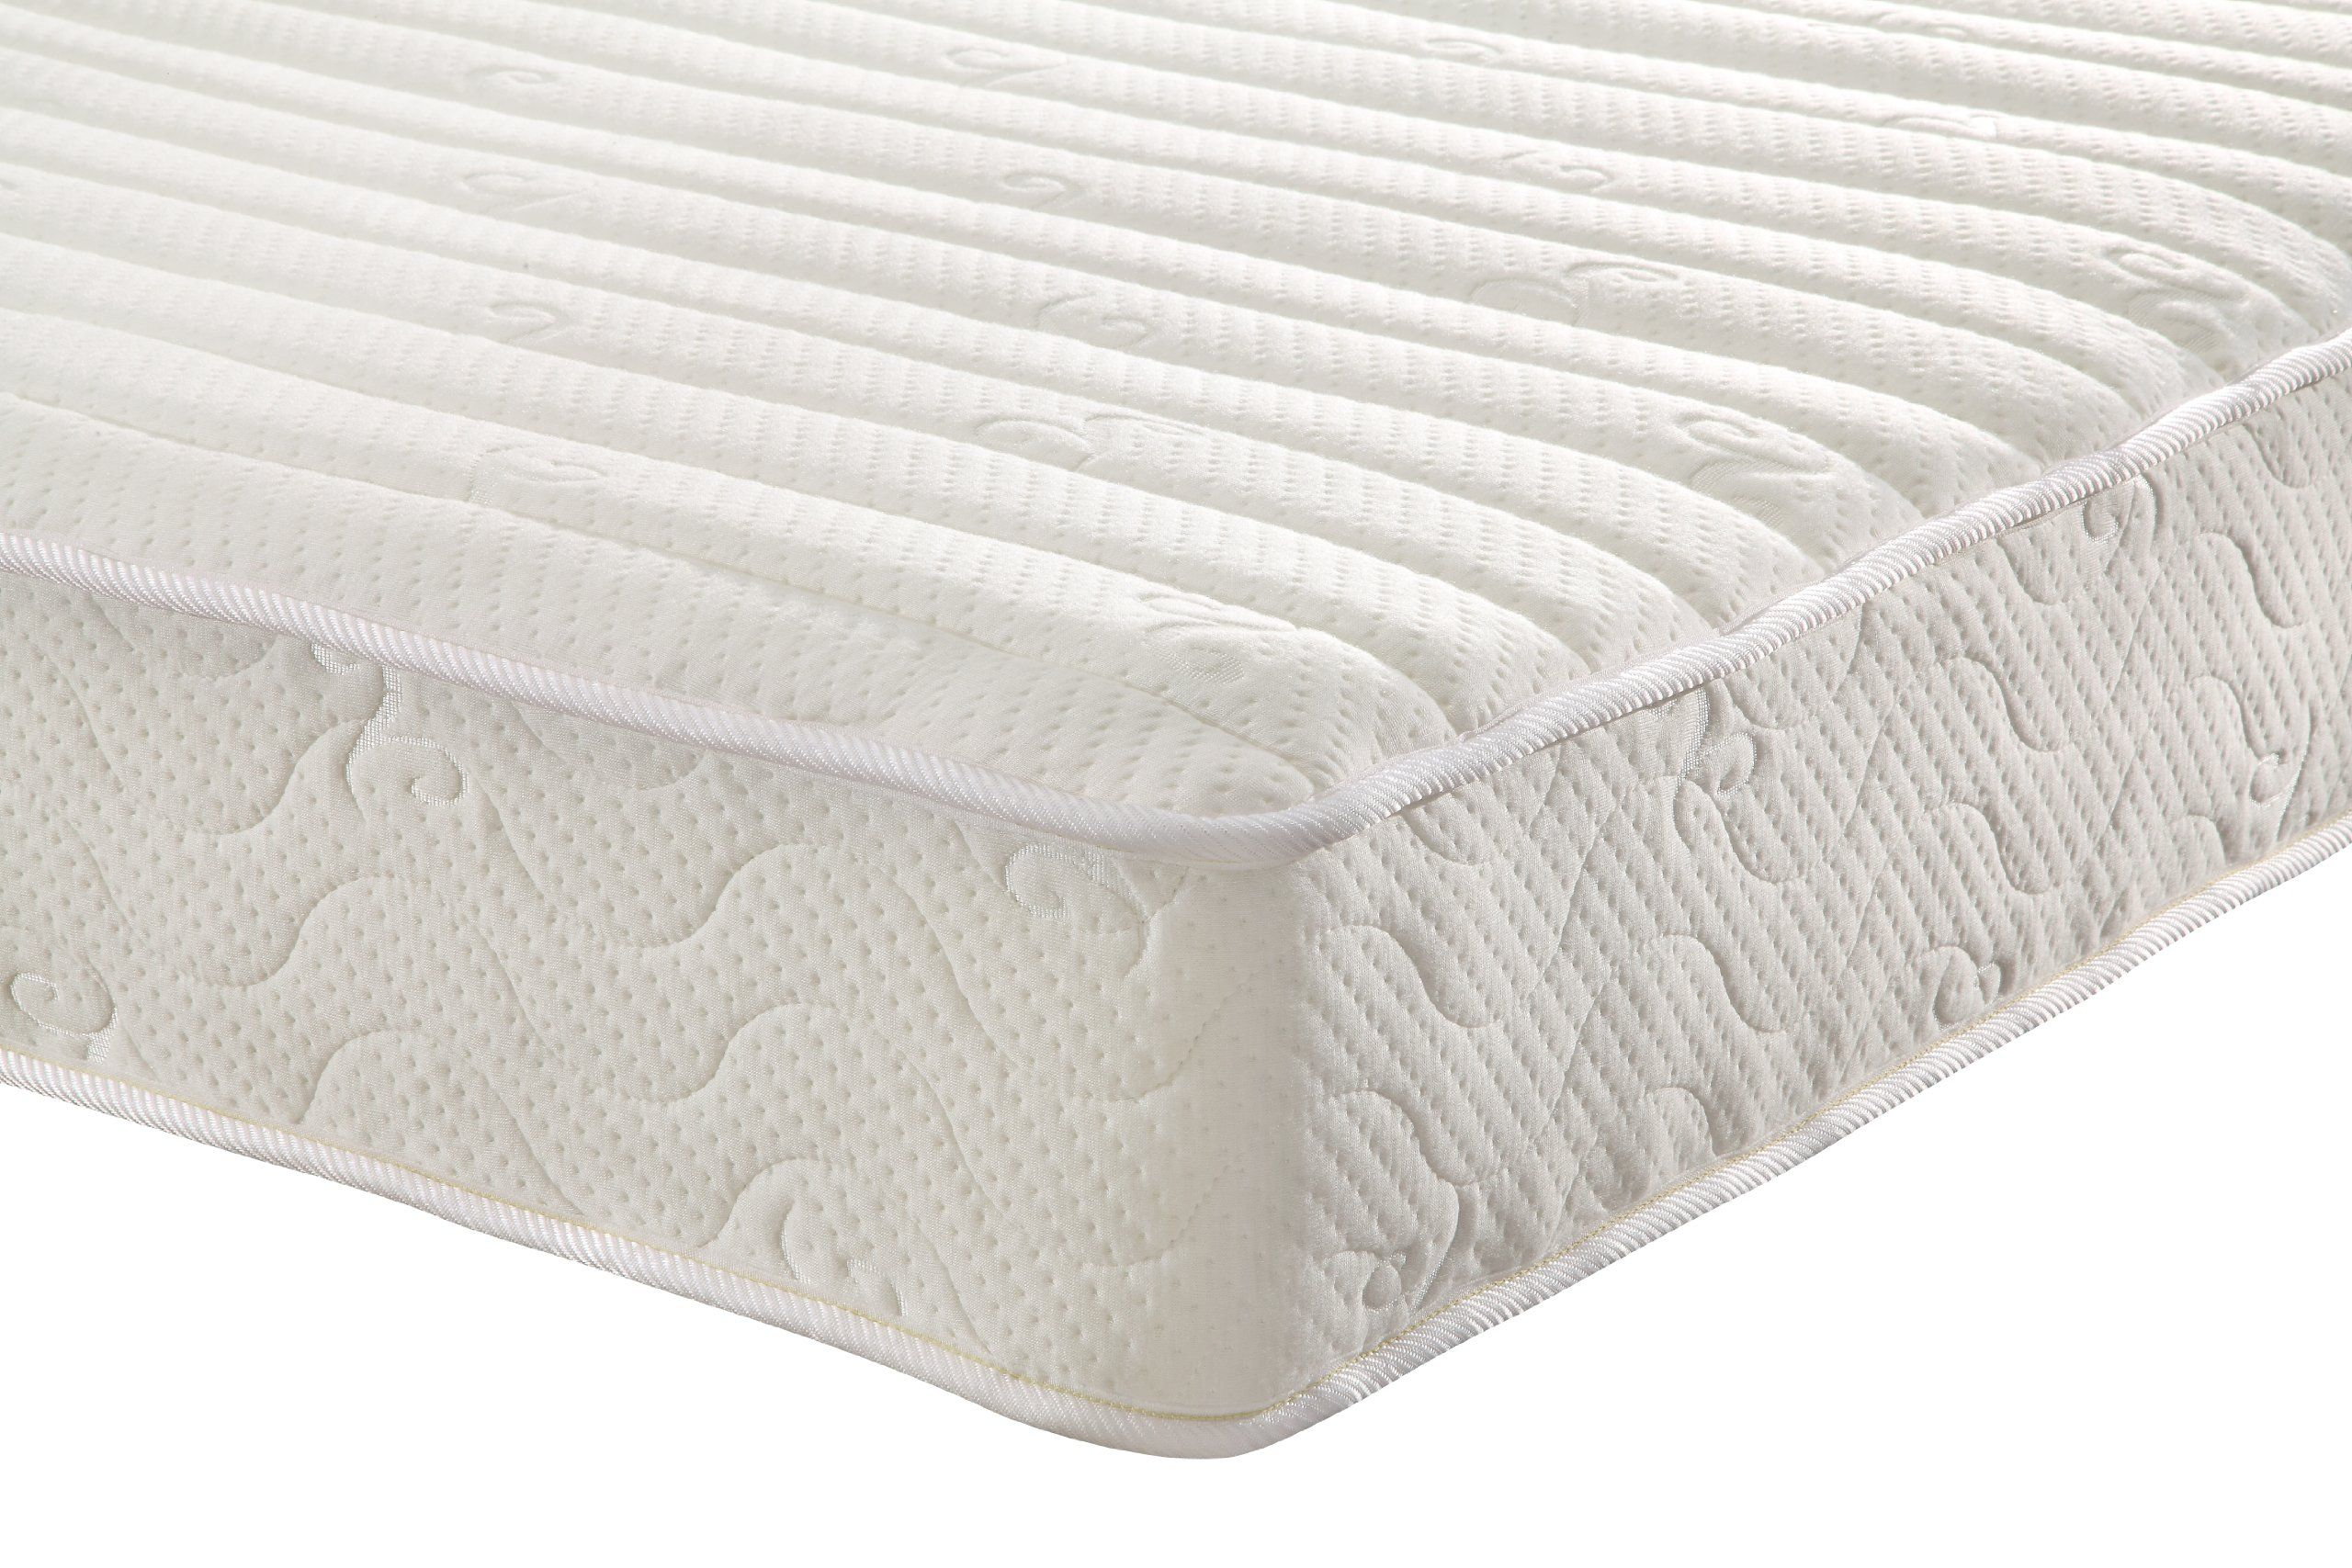 amazon com signature sleep contour 8 inch mattress full foam